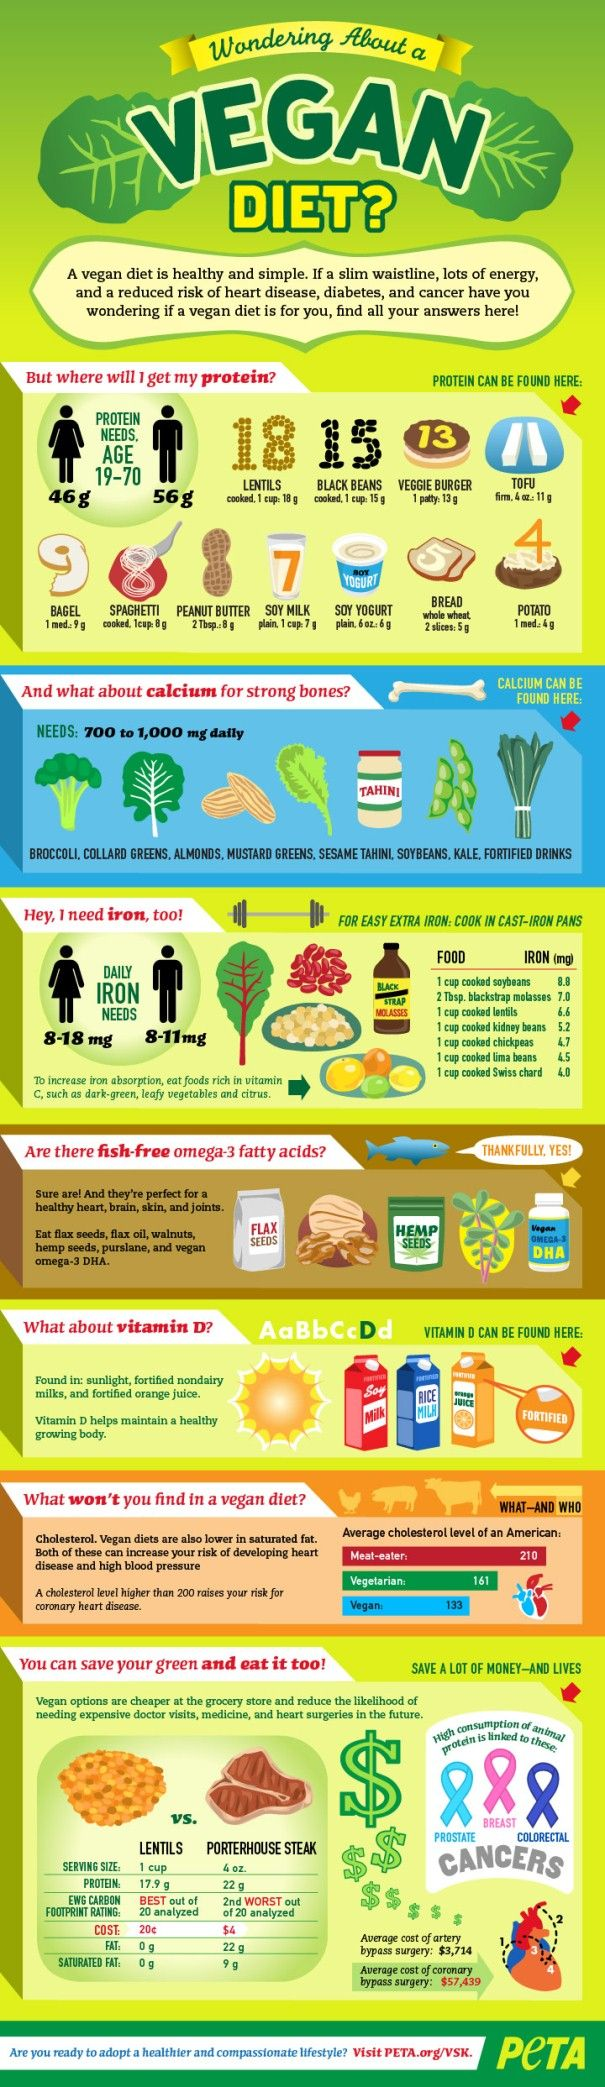 regardless vegan or not a great chart to know what nutrients you can get out of food instead of always relying on just eating meat#vegan #glutenfree #foodporn #cleanfood #healthy #healthysurprise #nutrition #soyfree #whatveganseat